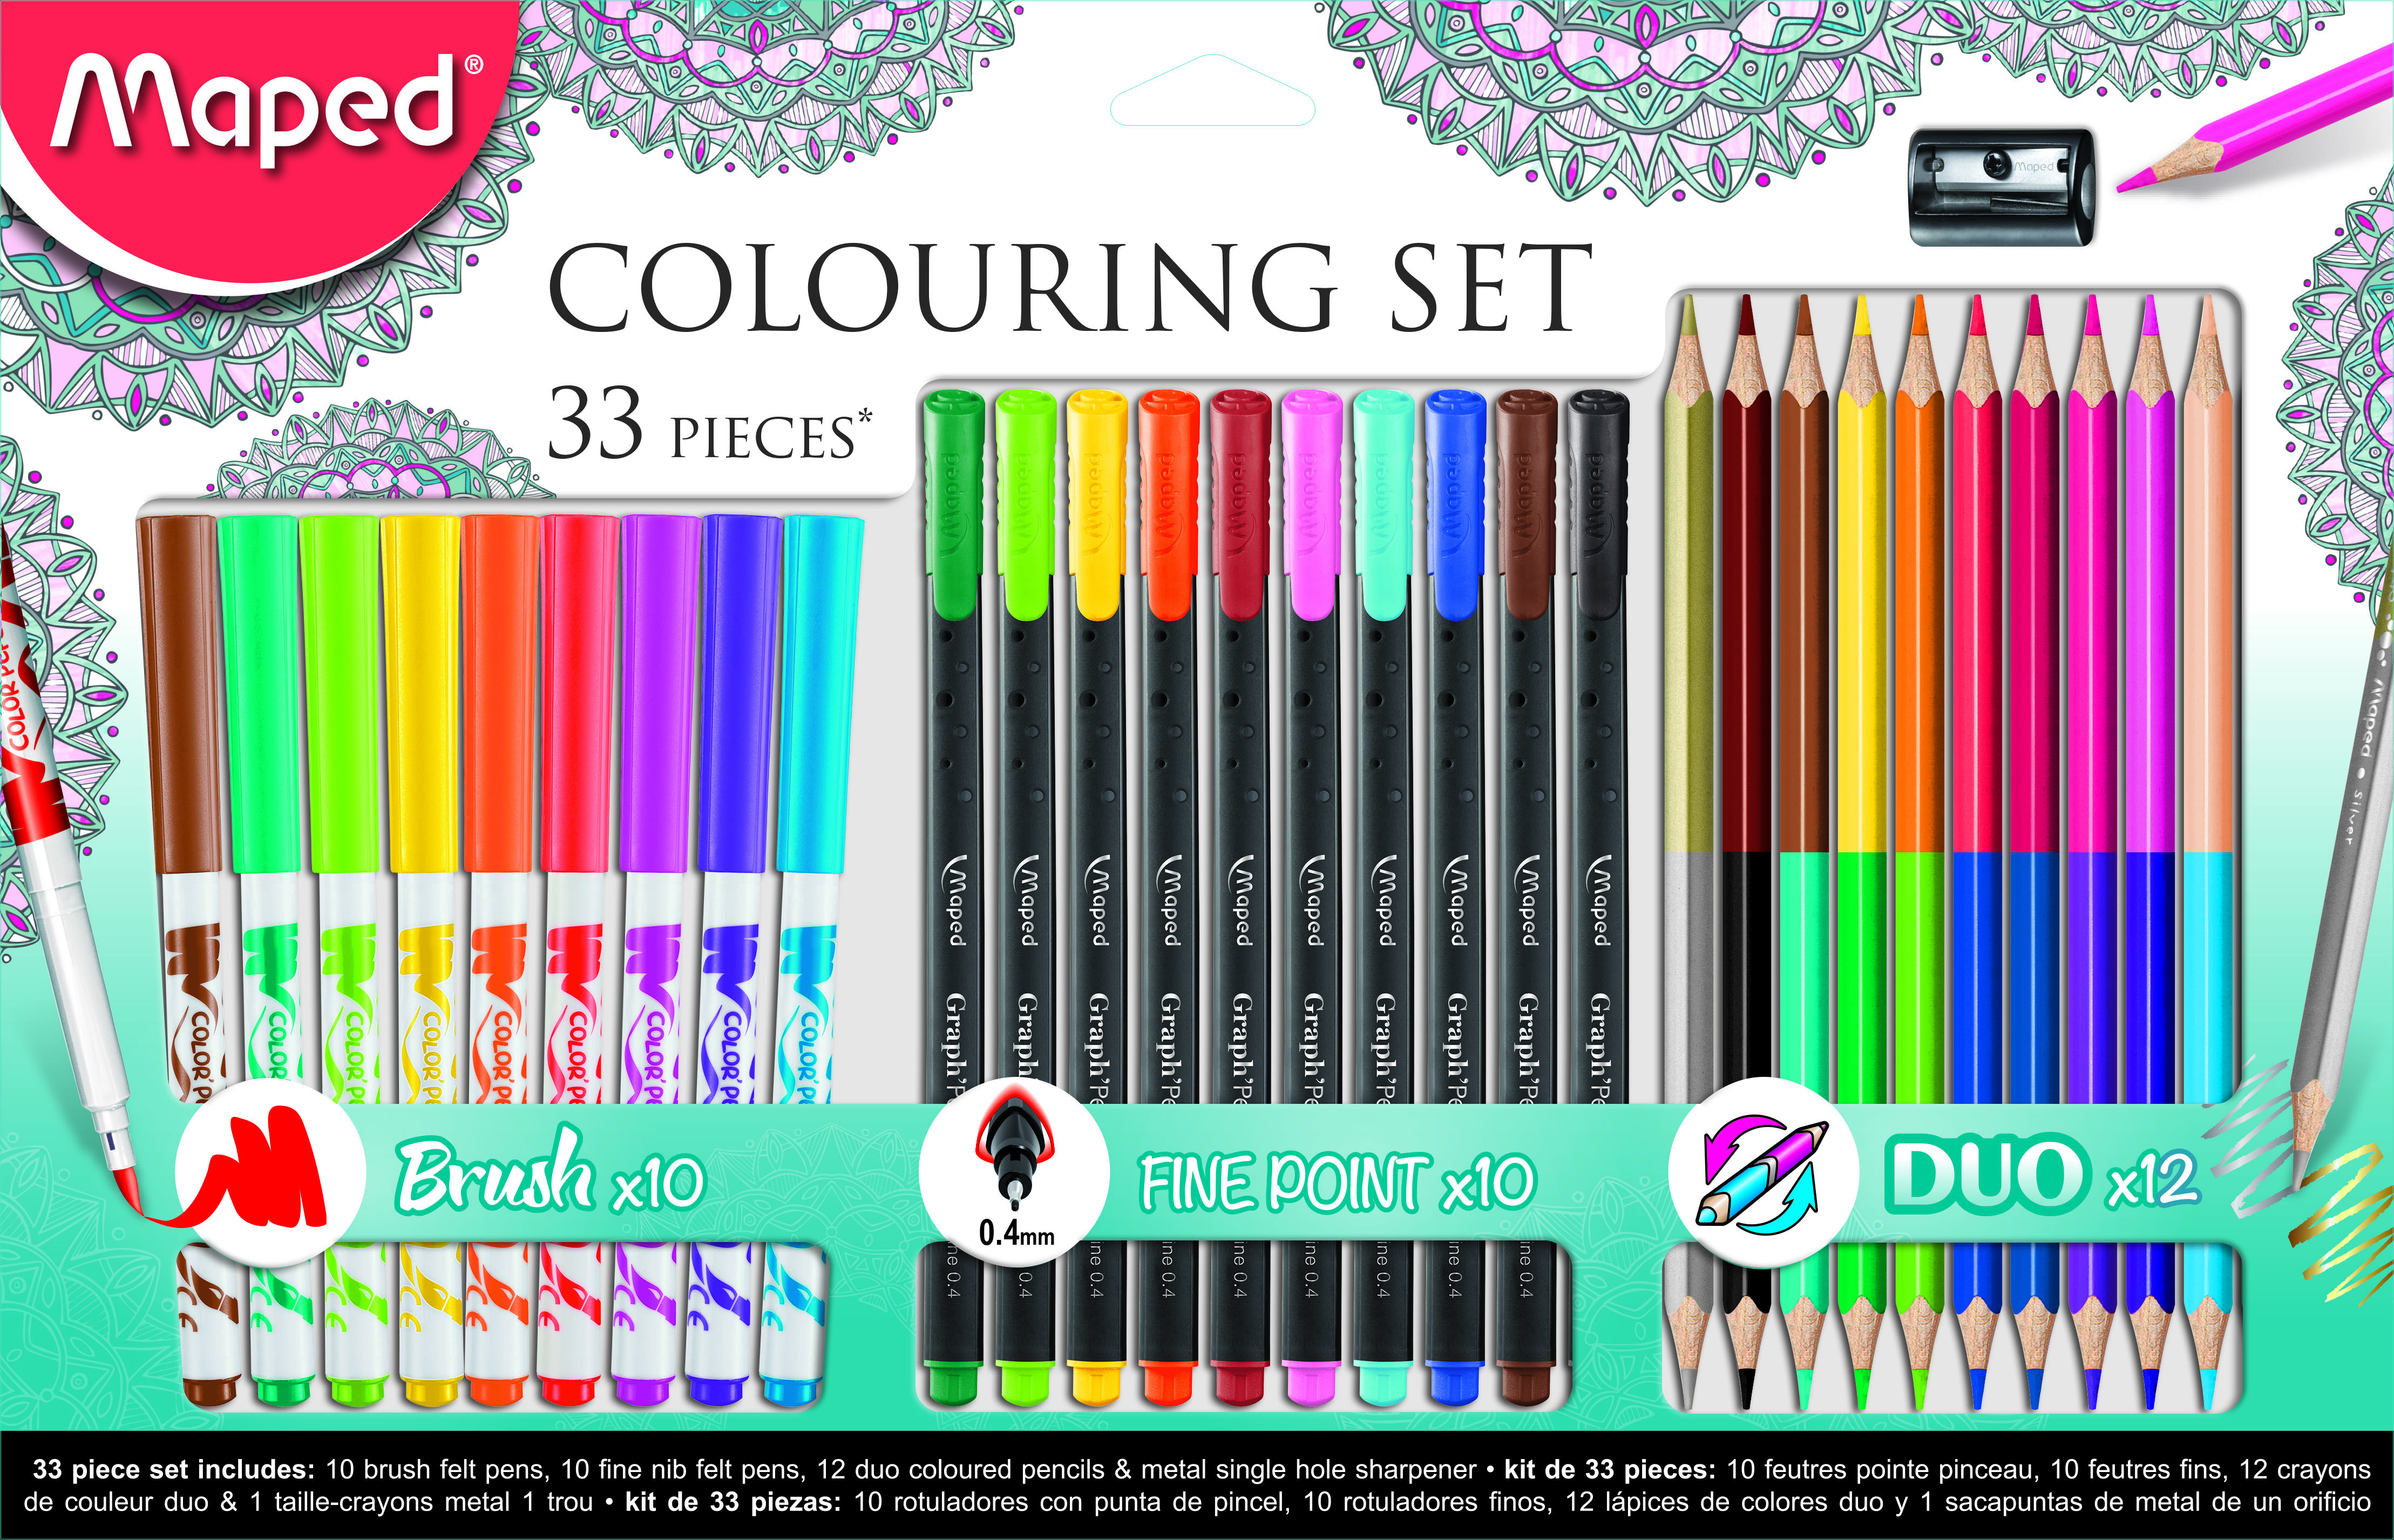 maped-33-piece-adult-colouring-set